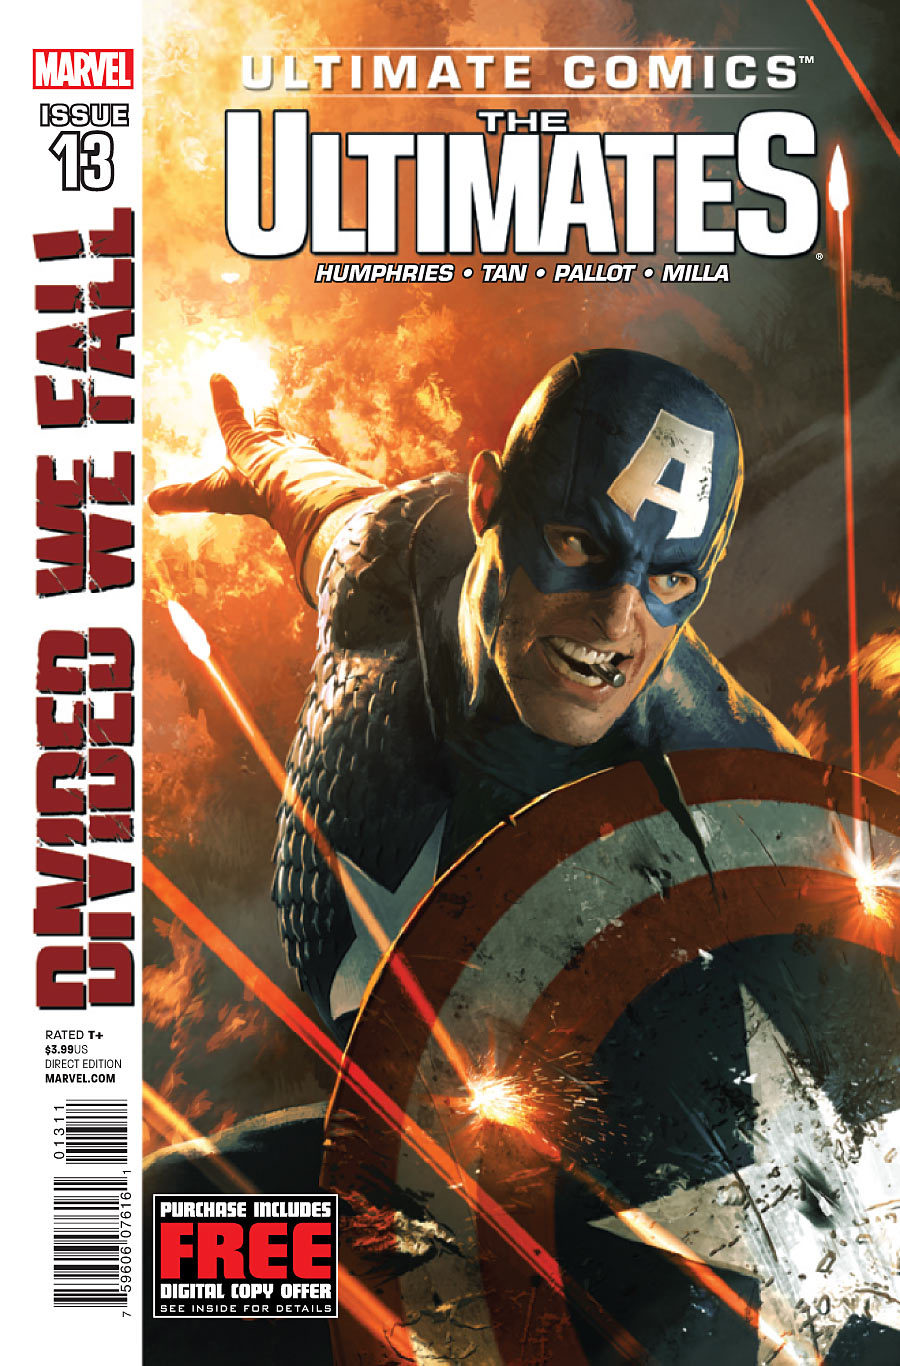 Check out a preview of ULTIMATES issue 13 at Comic Book Resources! Cap kicks a lot of ass in this issue. ON-SALE THIS WEDNESDAY! DIVIDED WE FALL E X P L O D E S INTO ACTION!